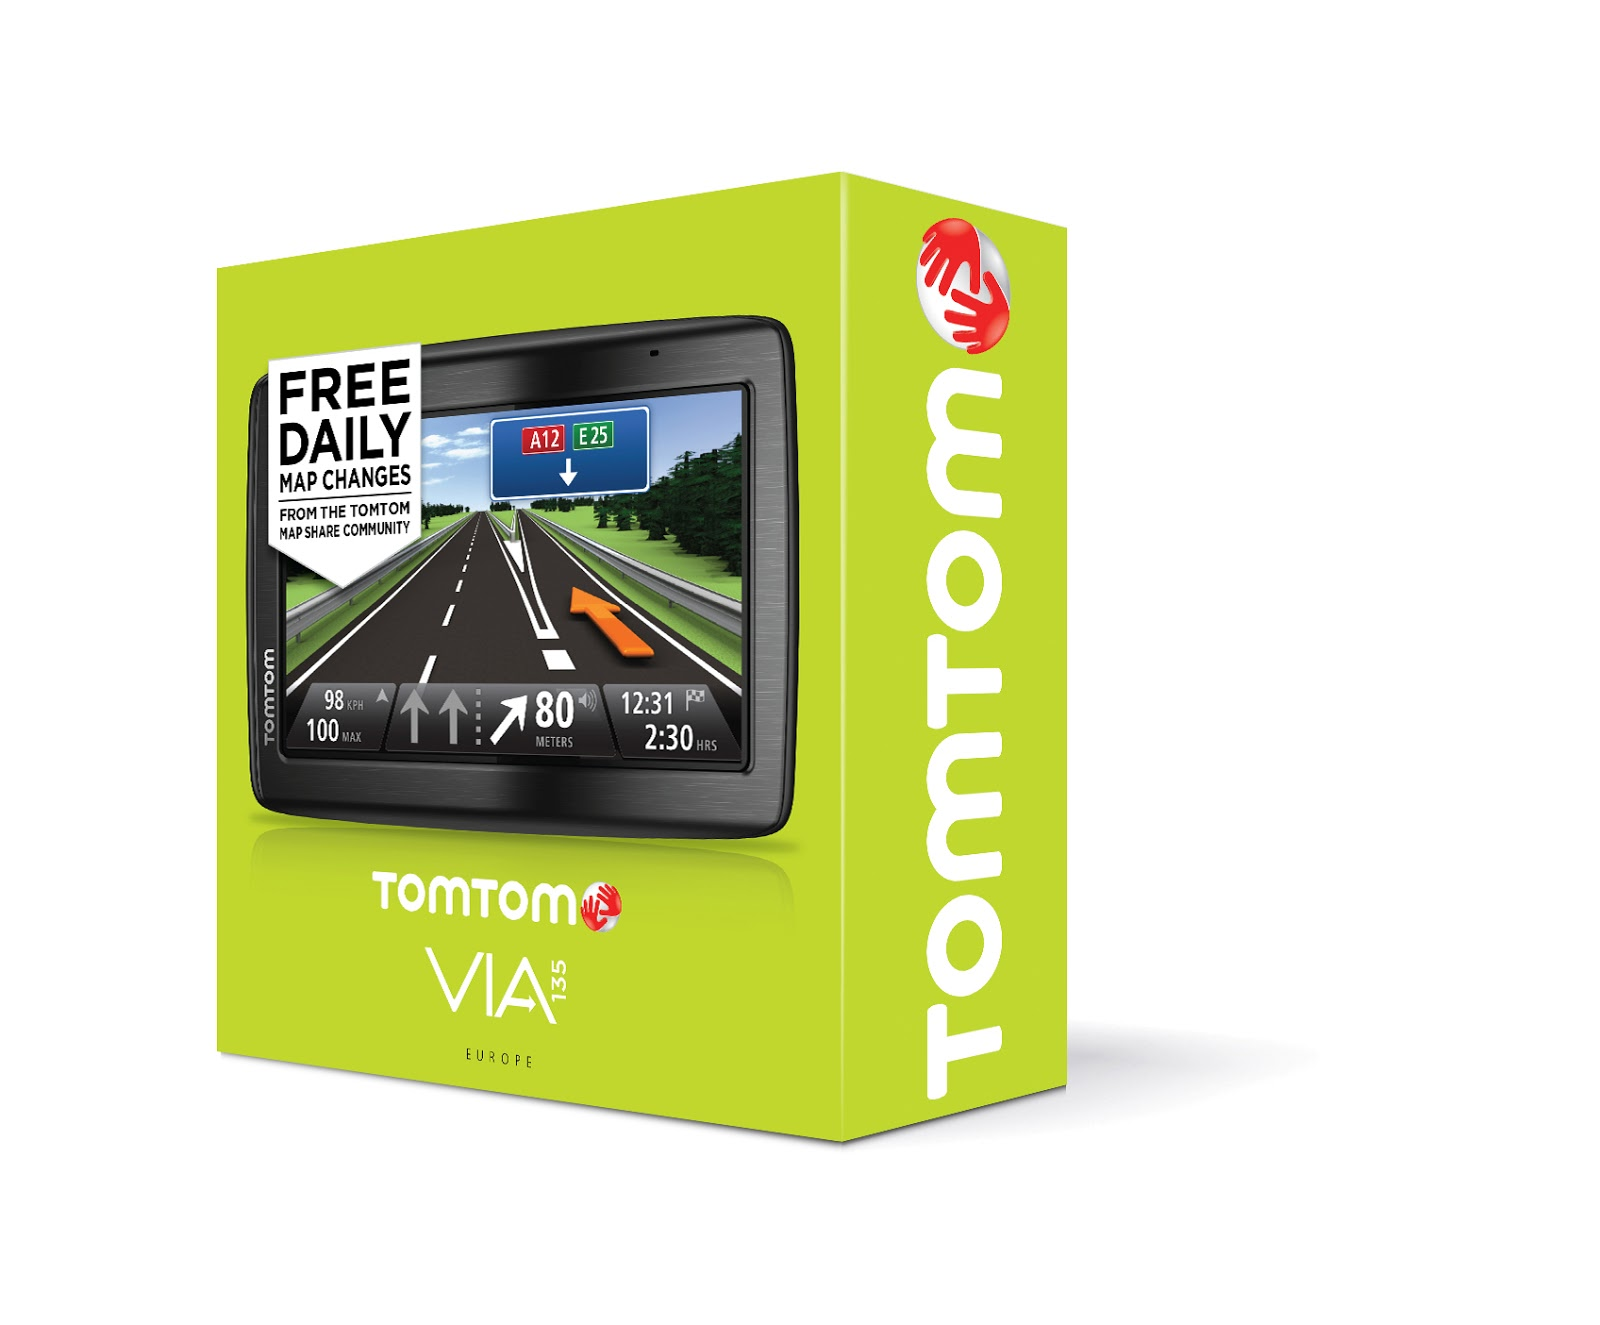 tomtom via 135 map crack